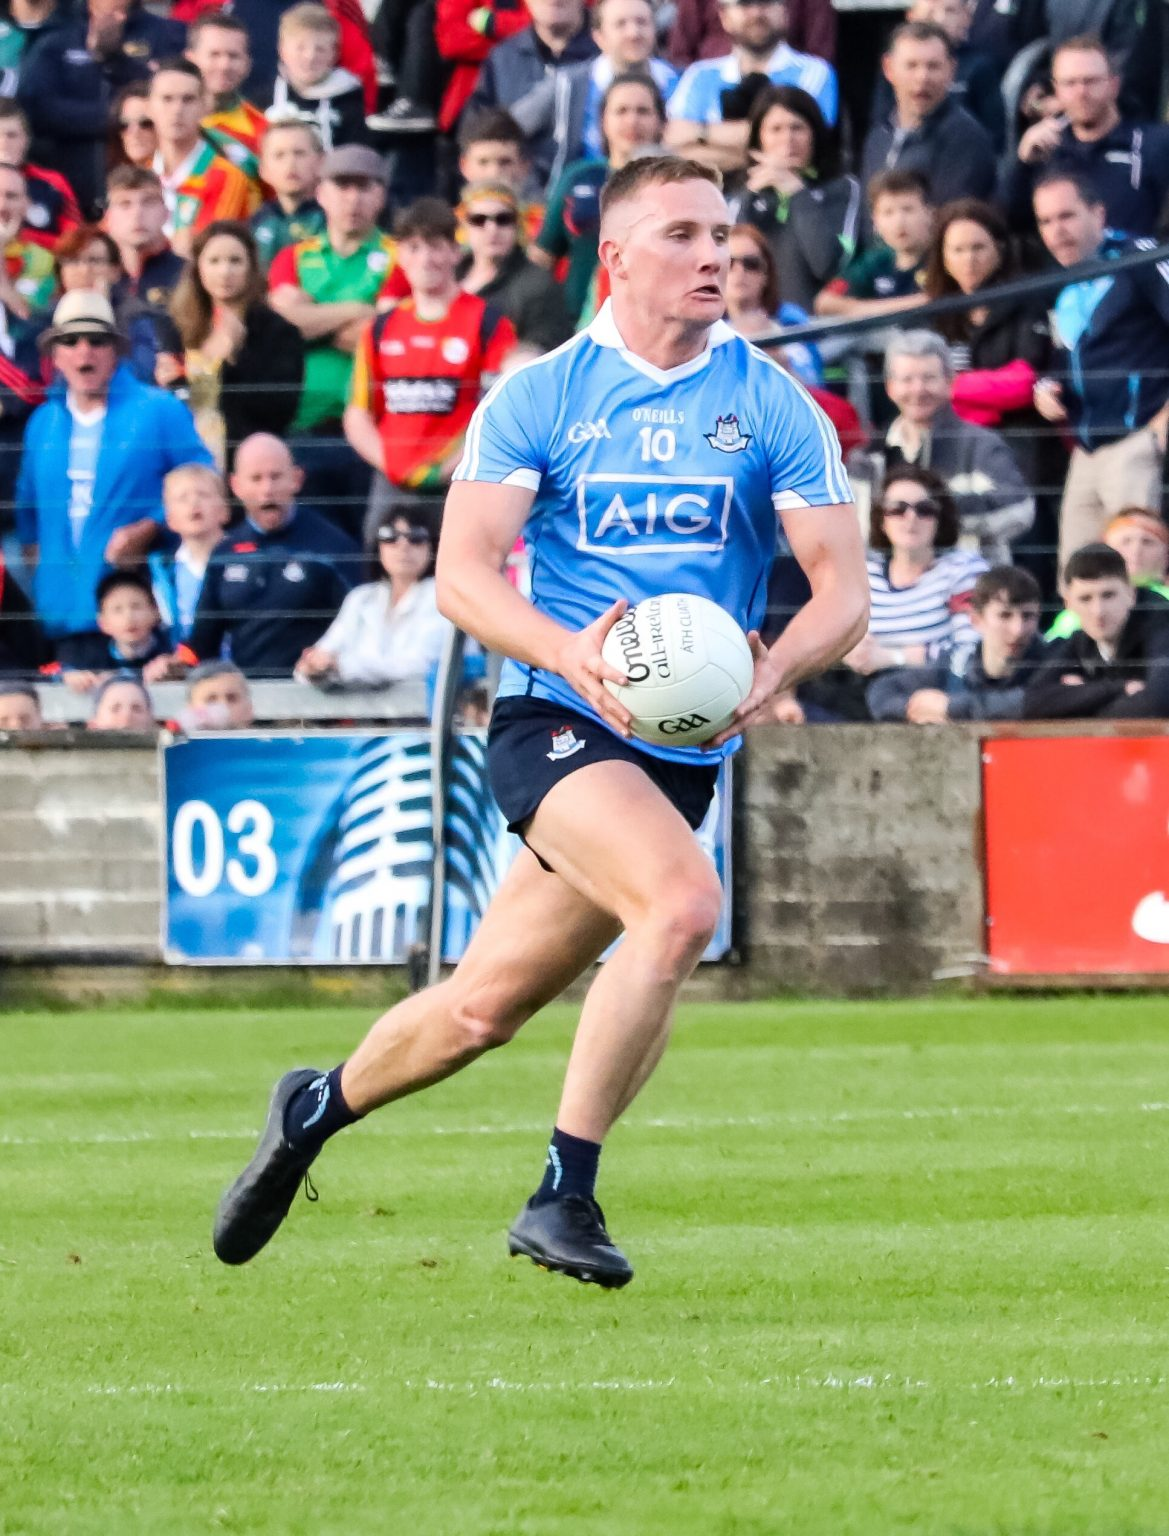 DUBLIN SWAT KERRY CHALLENGE ASIDE WITH CONSUMMATE EASE